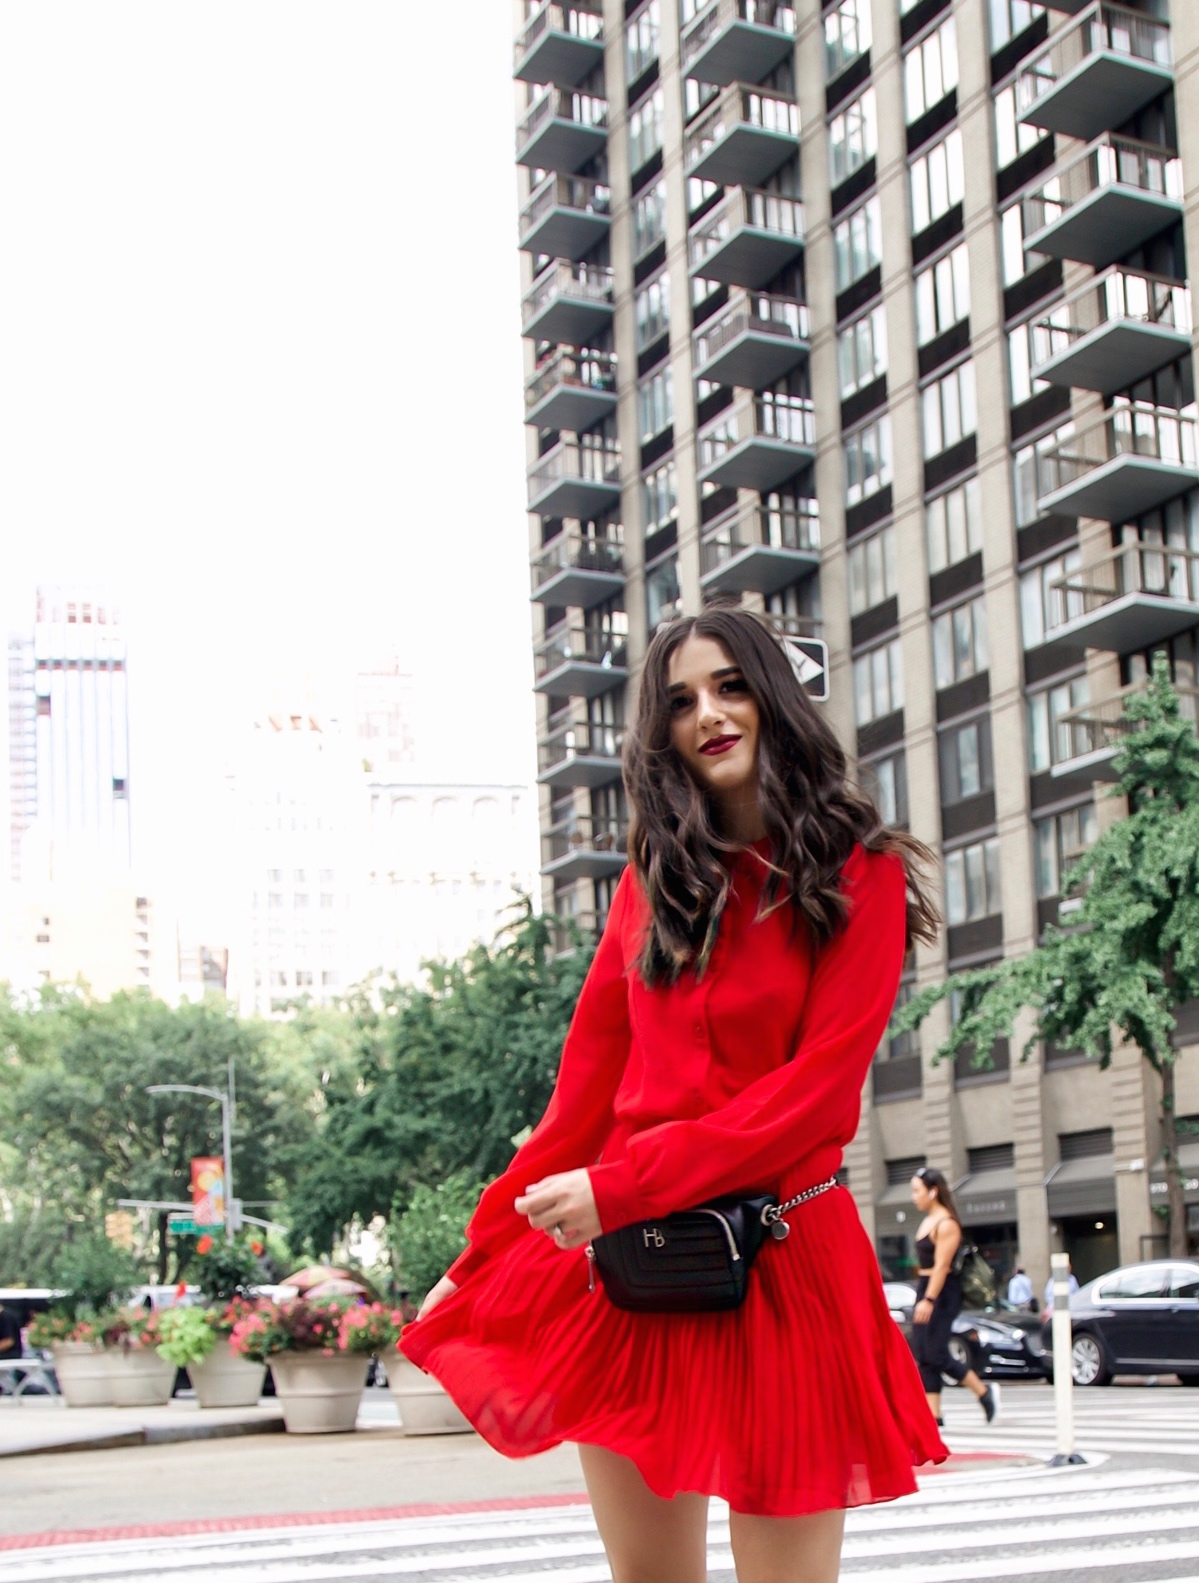 What Do Bloggers Do With All The Free Products They Receive Red Pleated Dress Black Belt Bag Esther Santer Fashion Blog NYC Street Style Blogger Outfit OOTD Trendy ASOS Vince Camuto Braided Sandals Shoes Hair Fanny Pack Women Girl Summer Fall Shopping.jpg